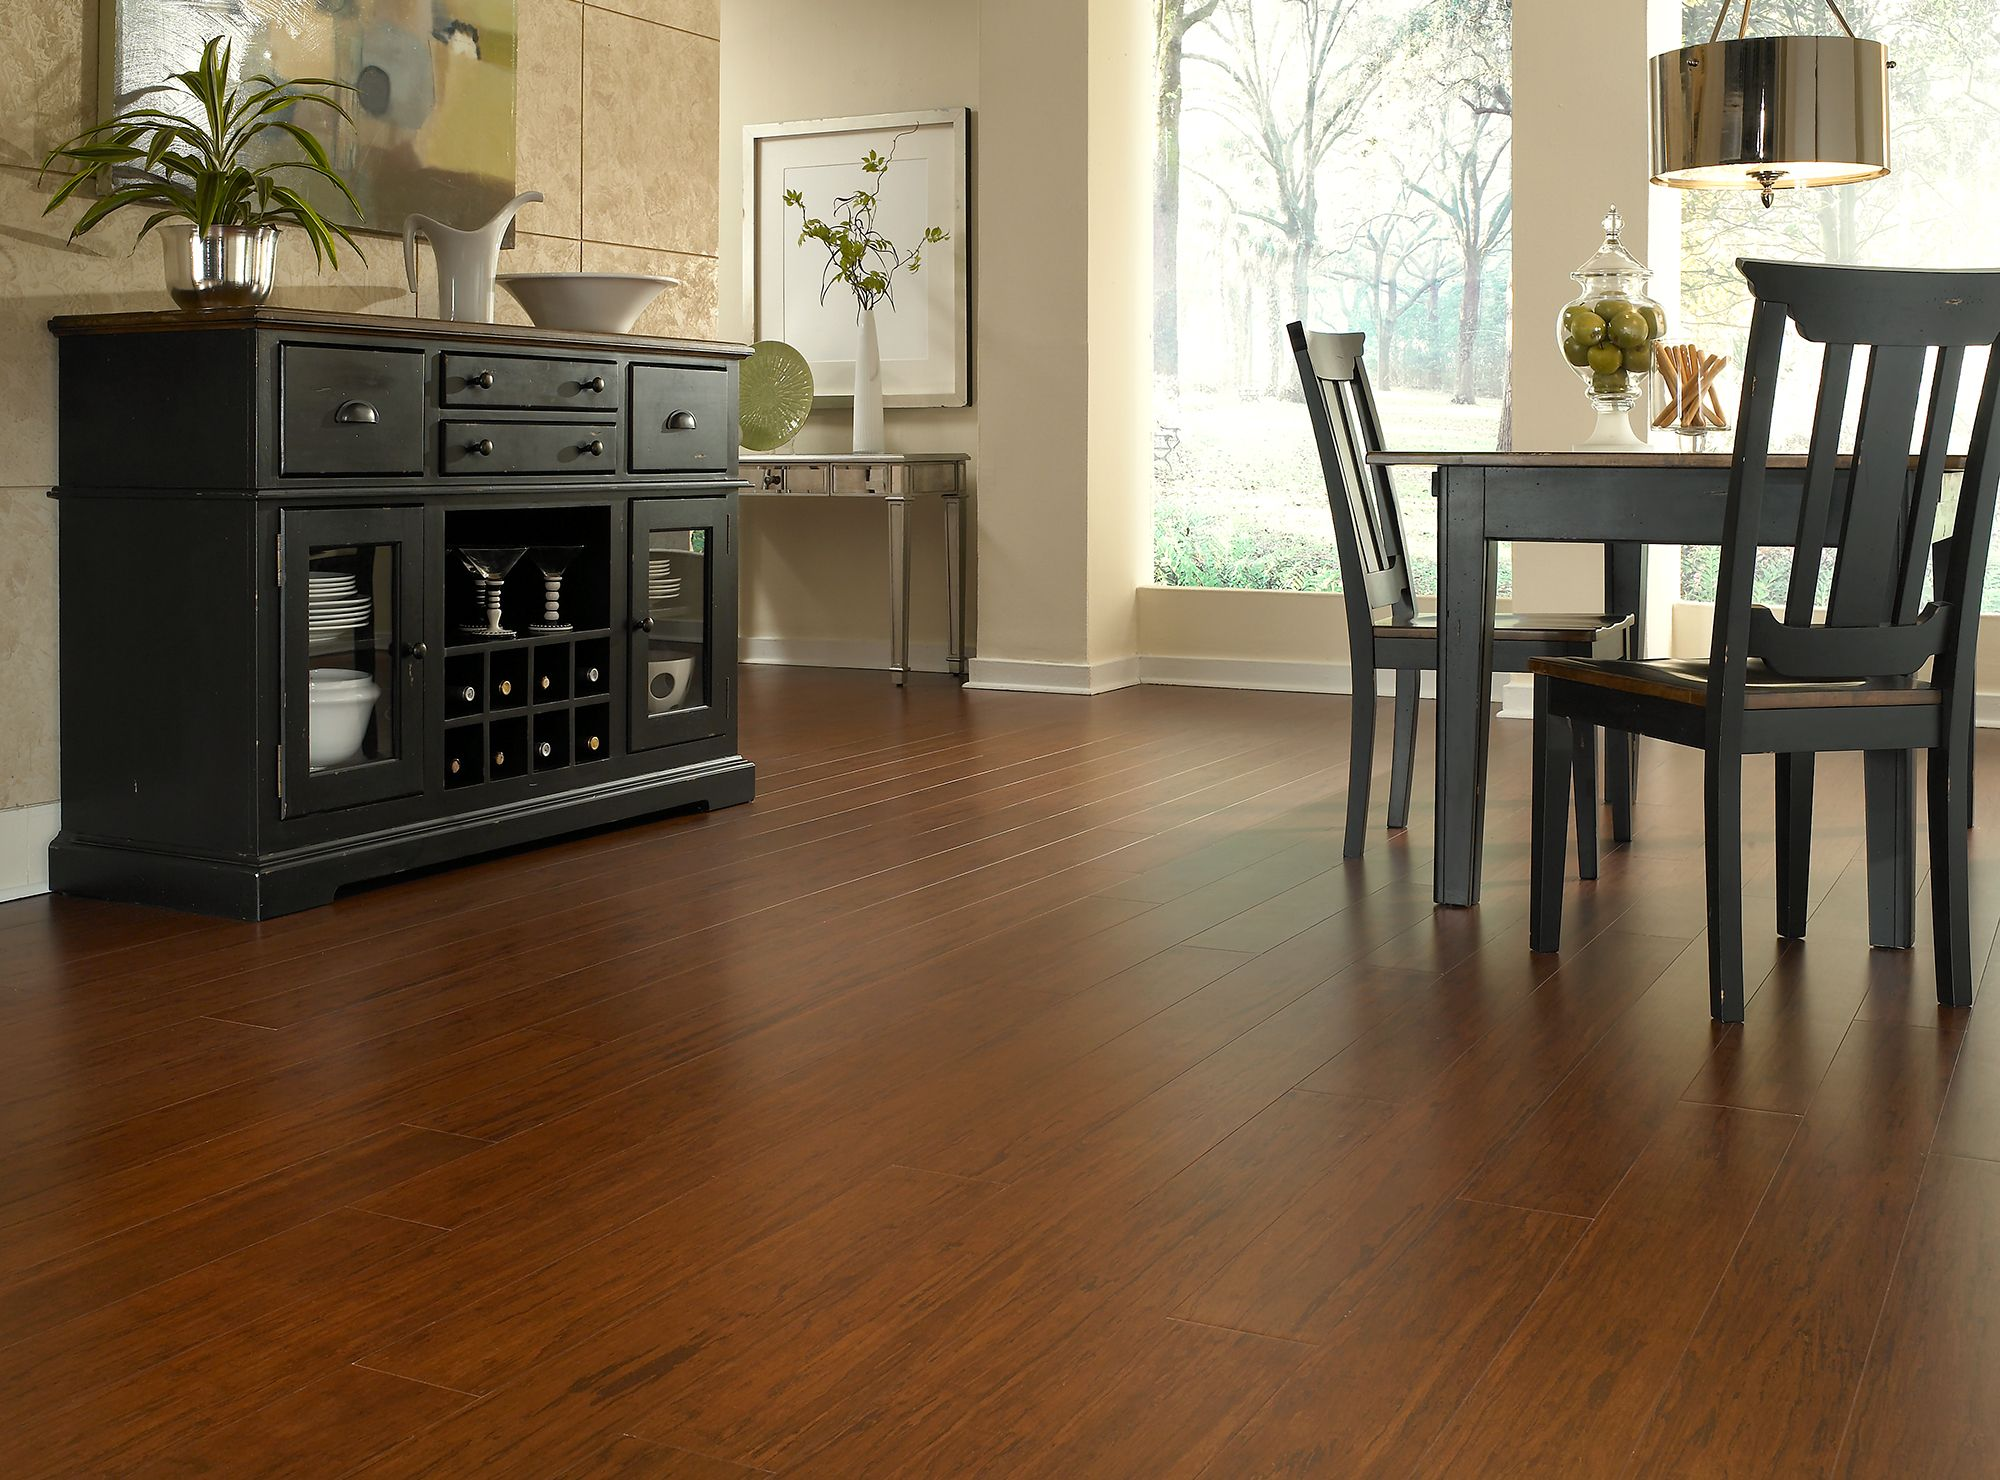 Spotlight Is On The Natural Bamboo Flooring By Us Floors Which Provide Lasting Durability In All Areas Of Your Home Bamboo Hardwood Flooring Flooring Home Decor Kitchen